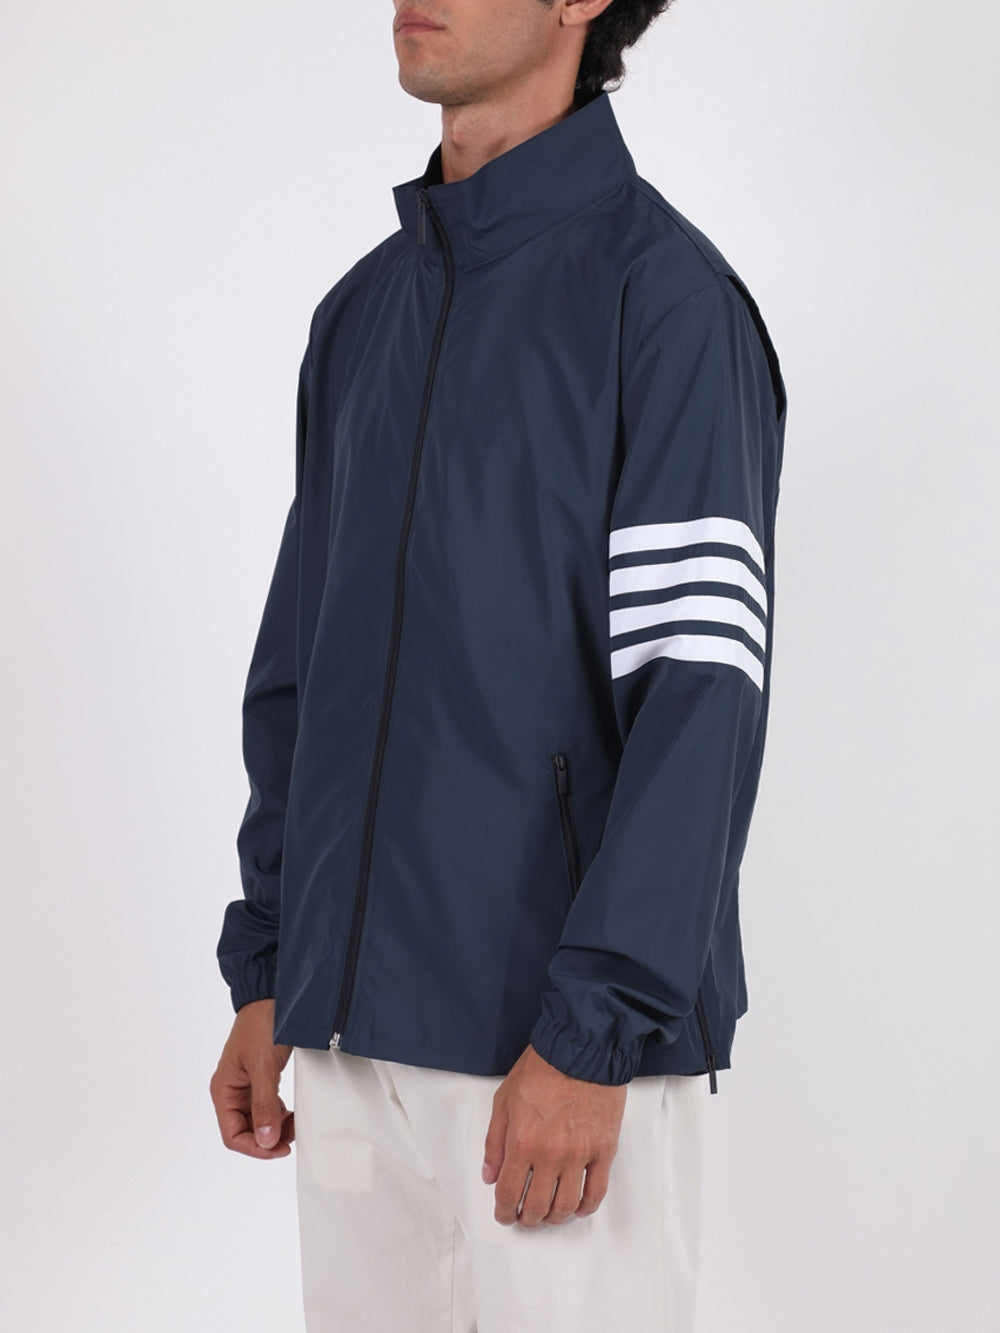 Navy 4-Bar Zip-Up Tech Jacket